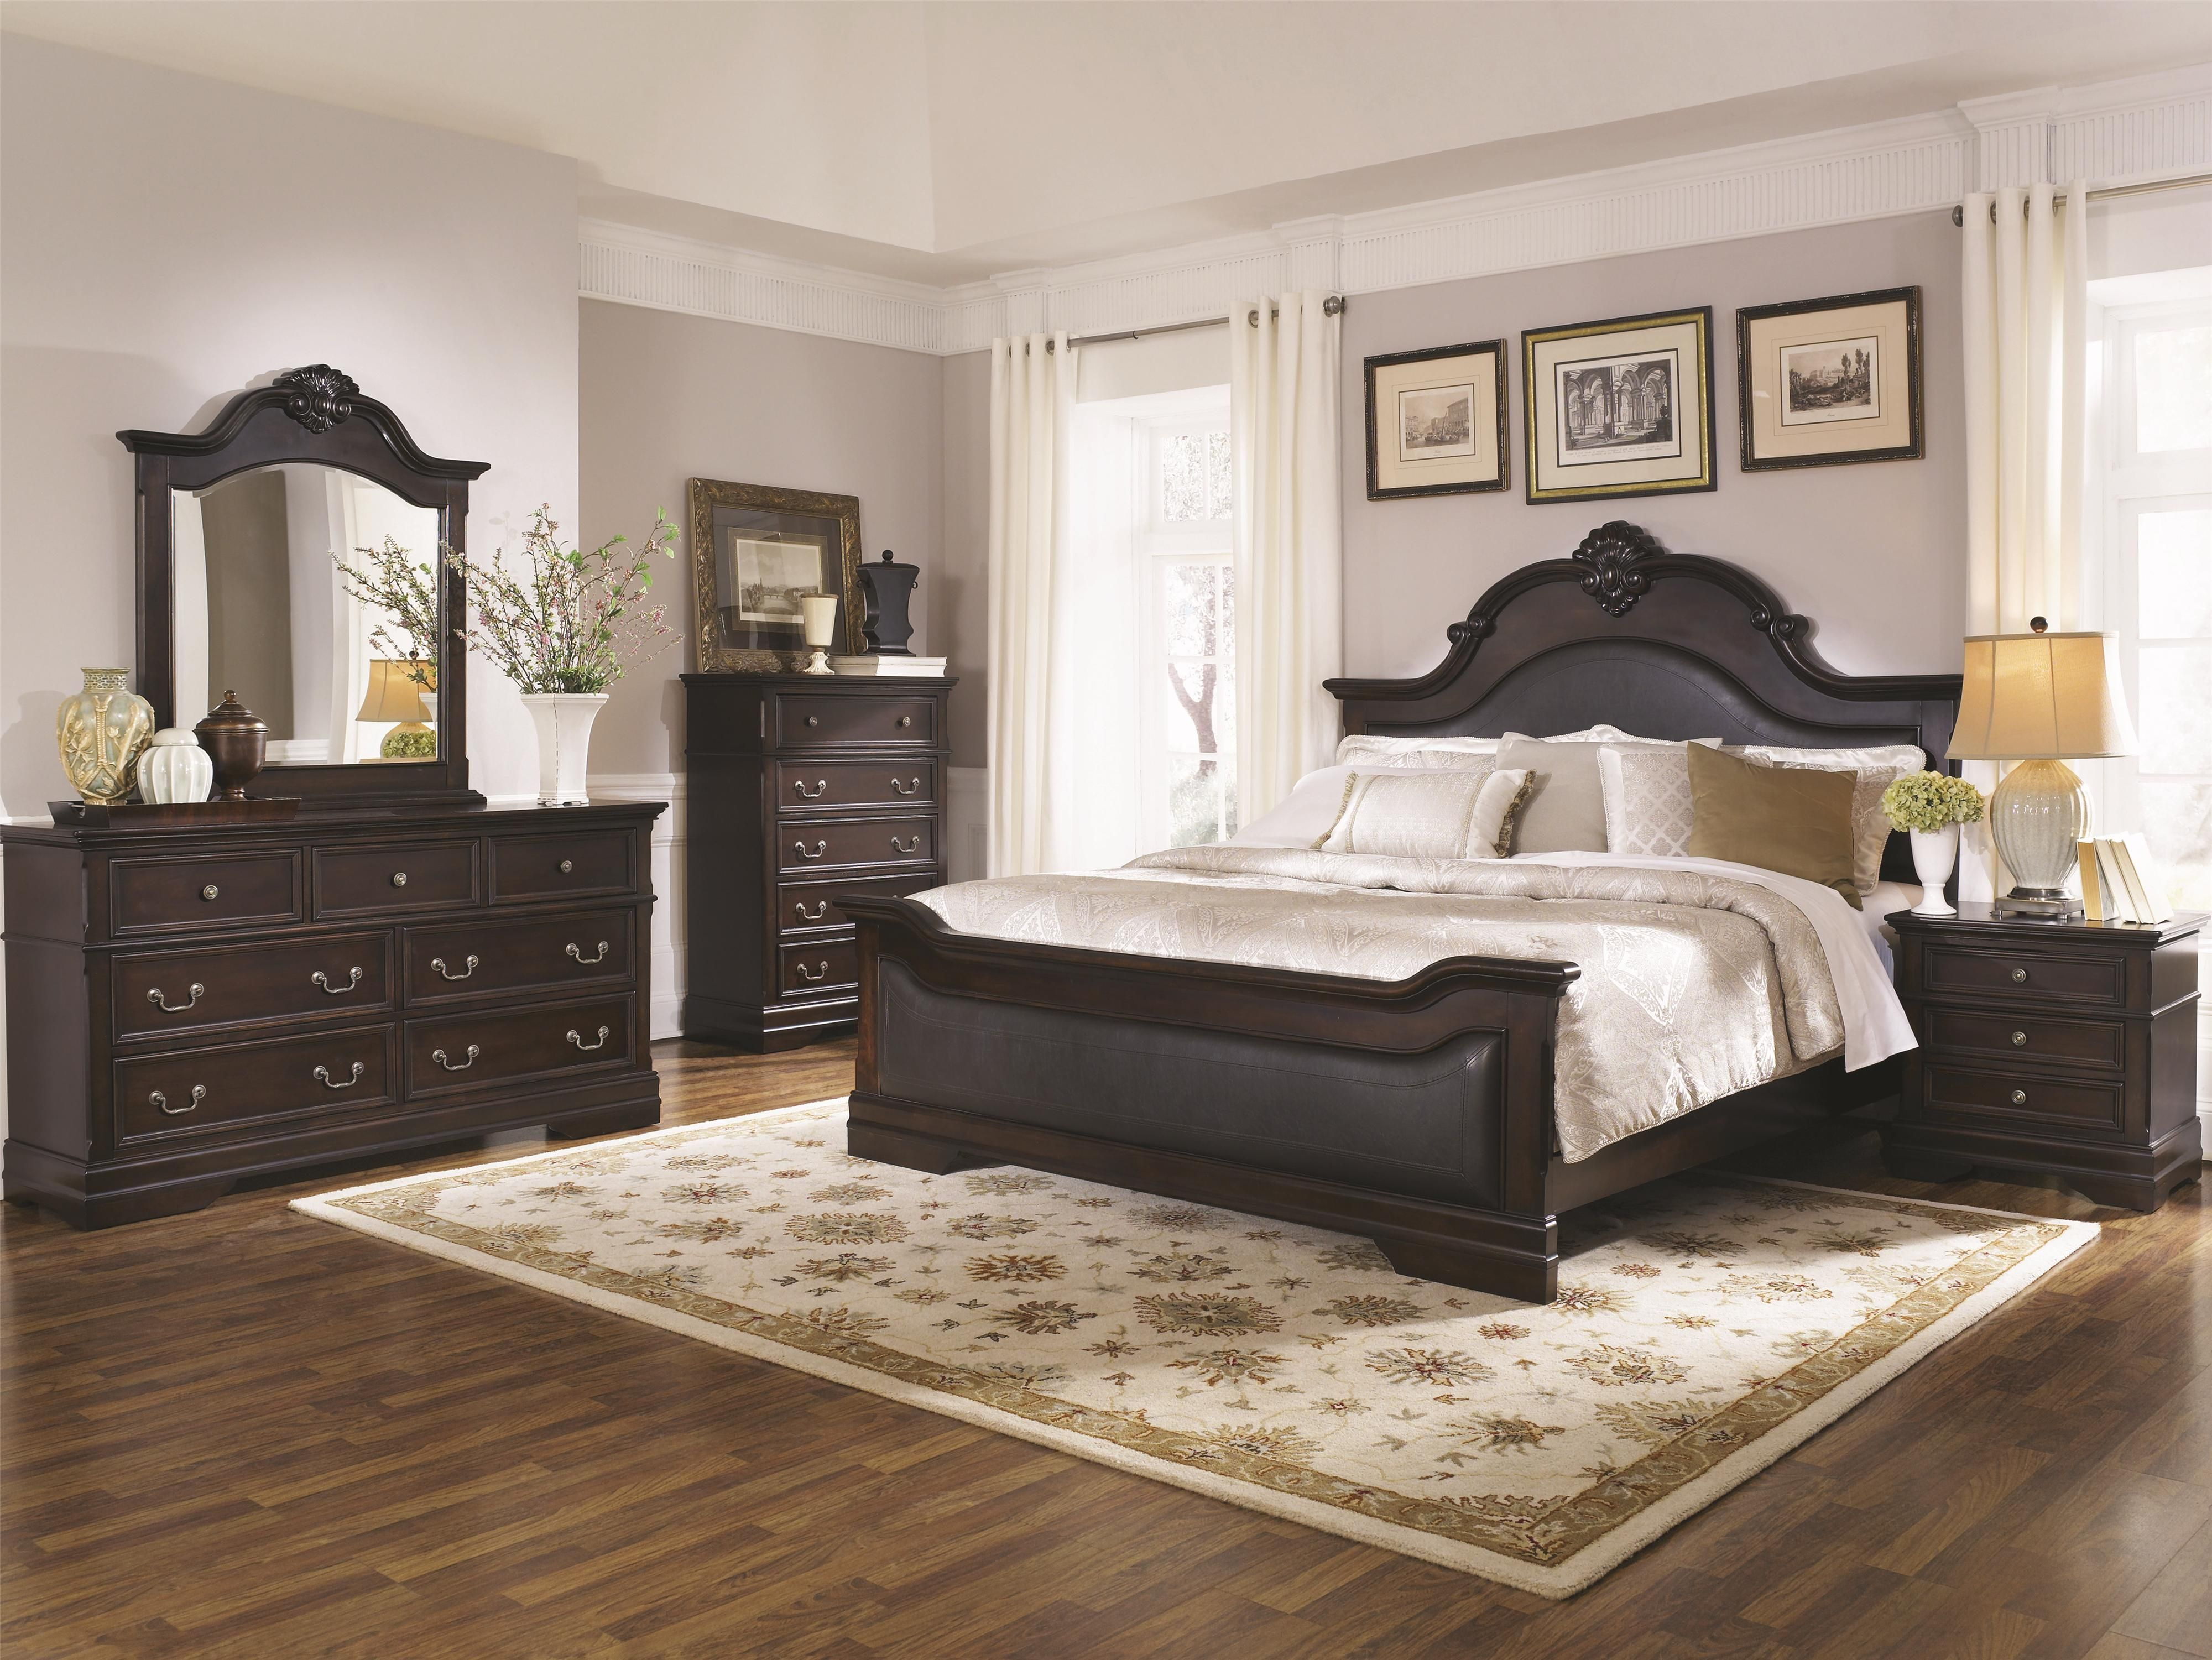 Cambridge King Bedroom Group By Coaster Bedroomfurnitureleeds